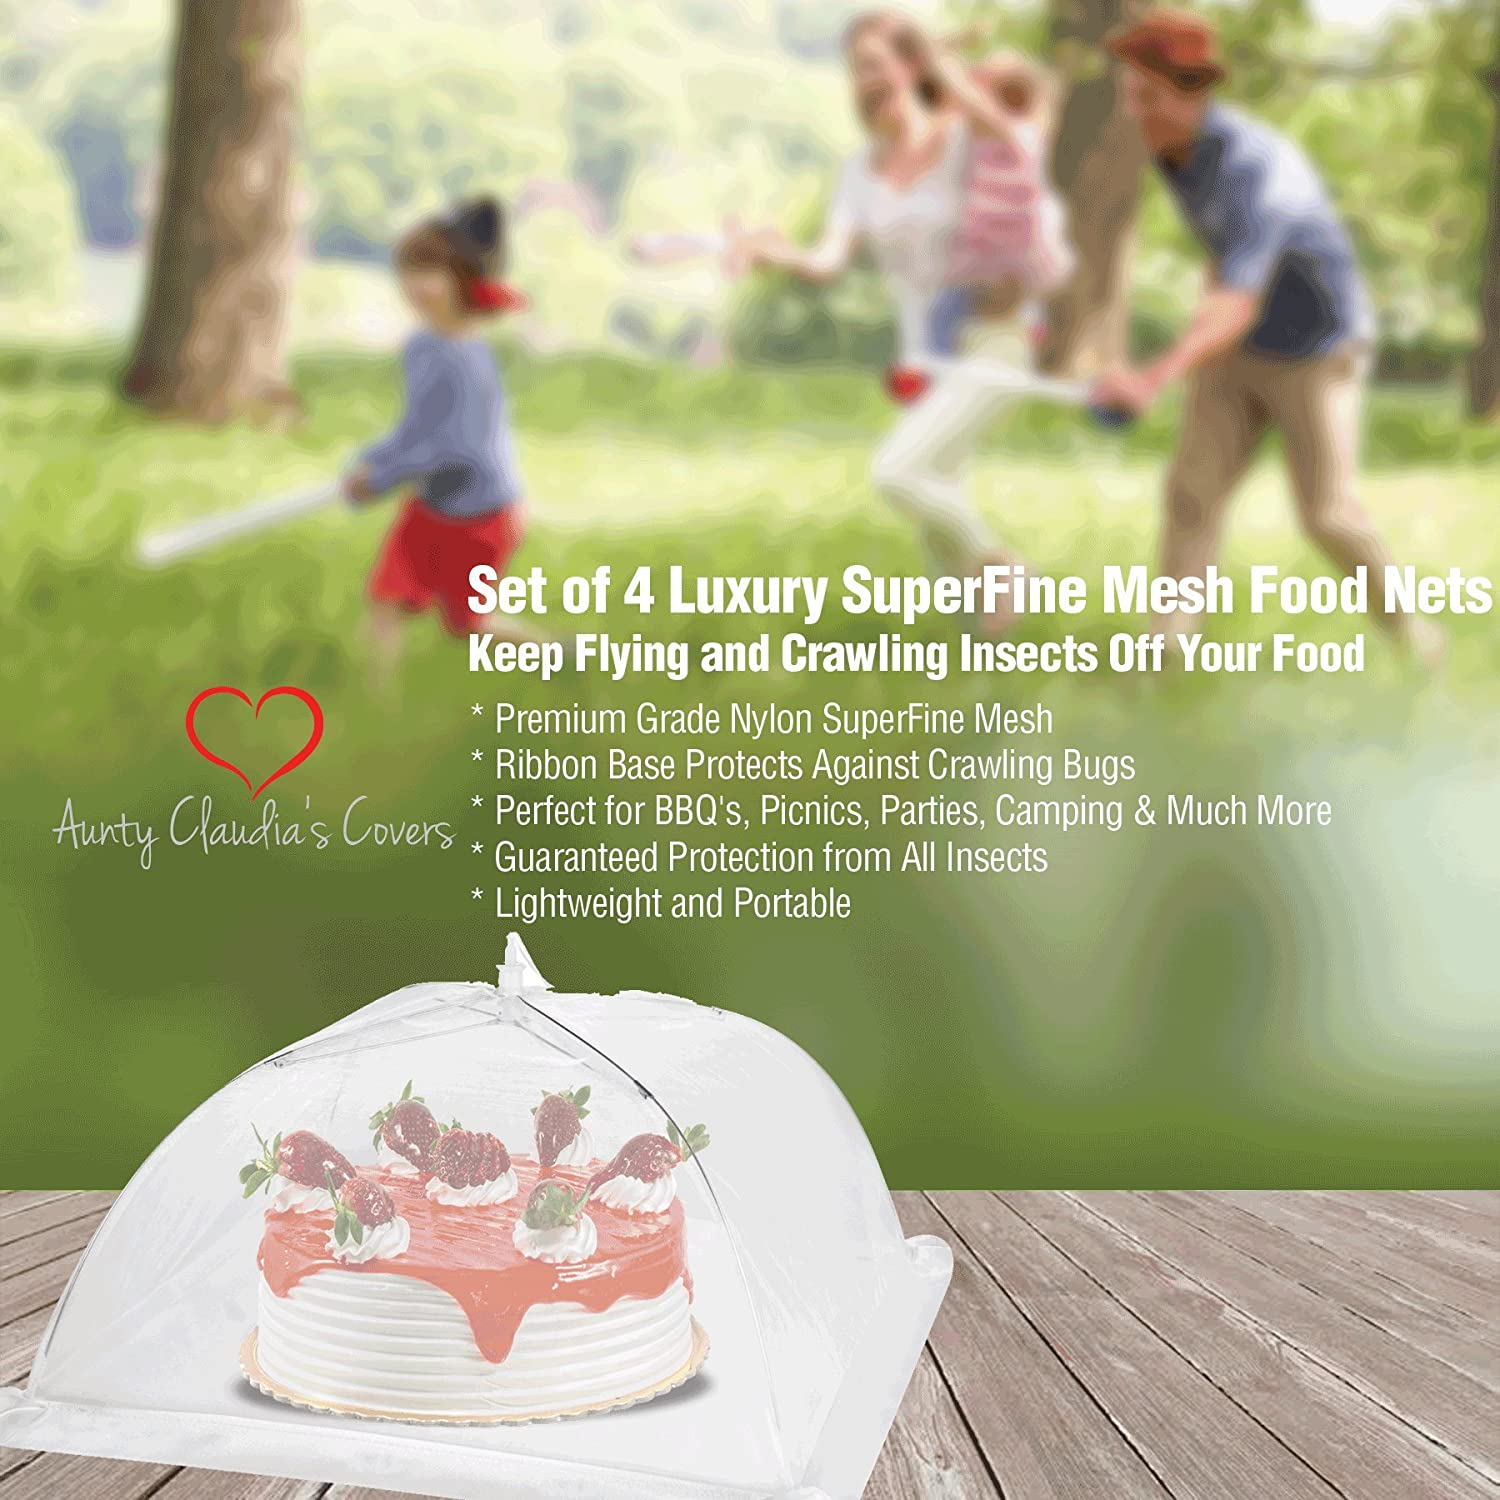 Luxury Food Nets | Pack of 4 | Easy Pop Up and Collapsible Umbrella | White ... & Luxury Food Nets | Pack of 4 | Easy Pop Up and Collapsible ...